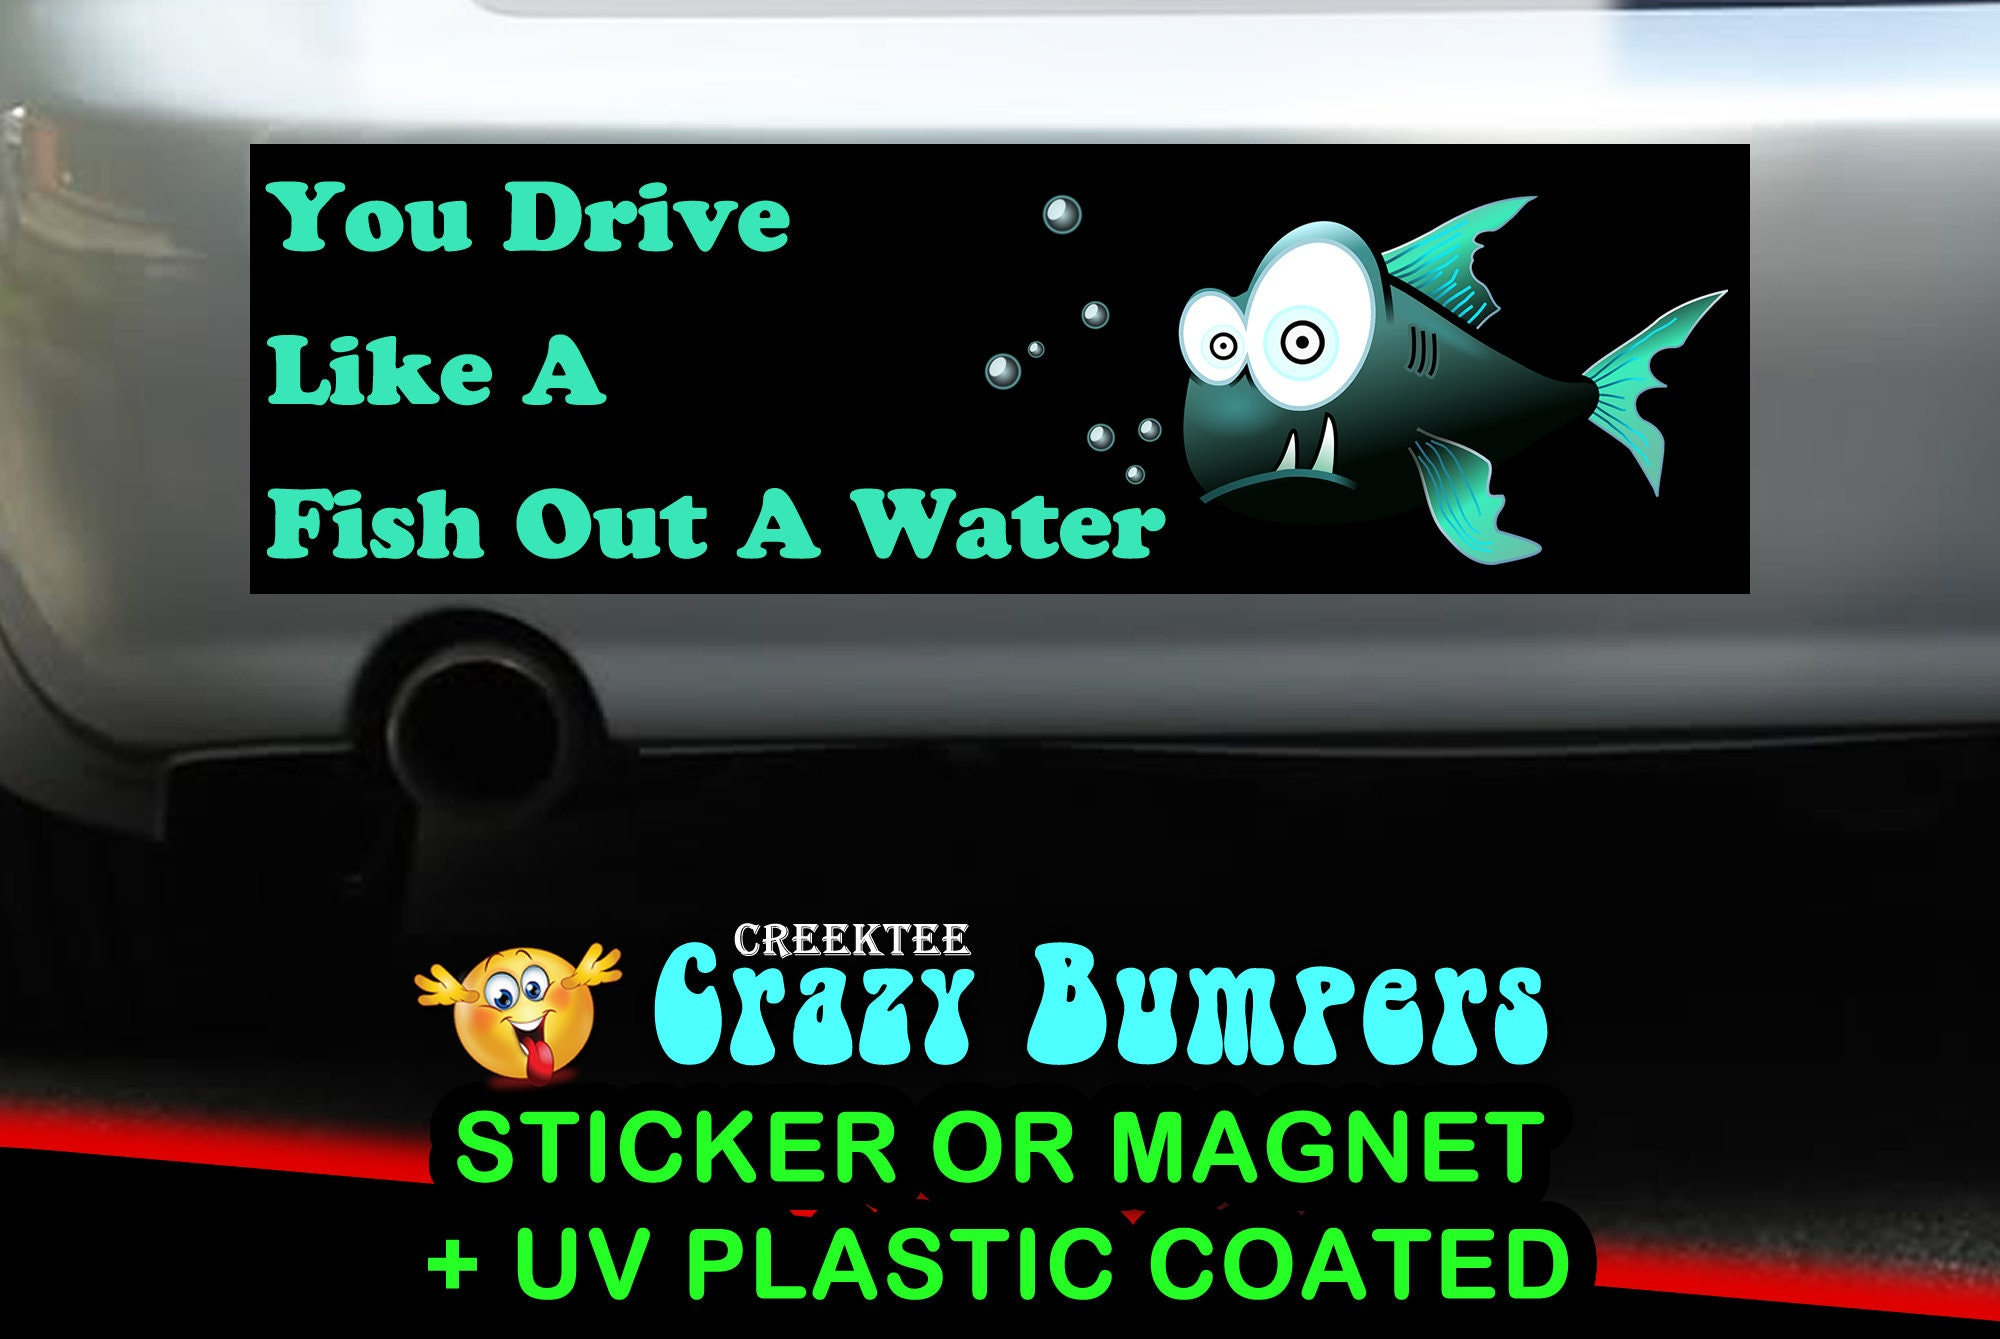 CAD$9.74 - You drive like a fish out a water 10 x 3 Bumper Sticker or Magnetic Bumper Sticker Available